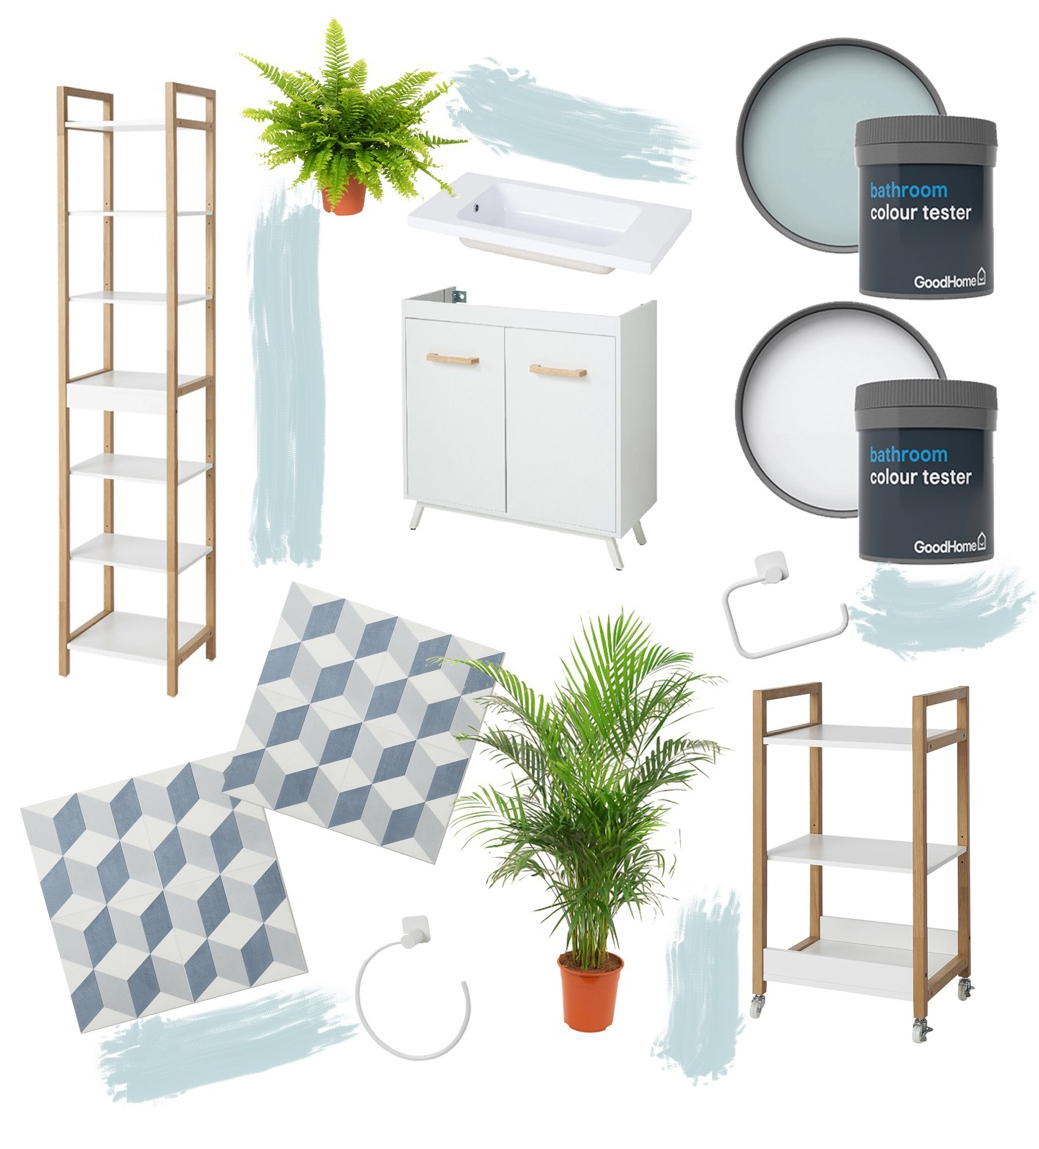 Find out my plans for our rented bathroom and 7 simple updates you can make to your own rental using the B&Q GoodHome Bathroom Range.